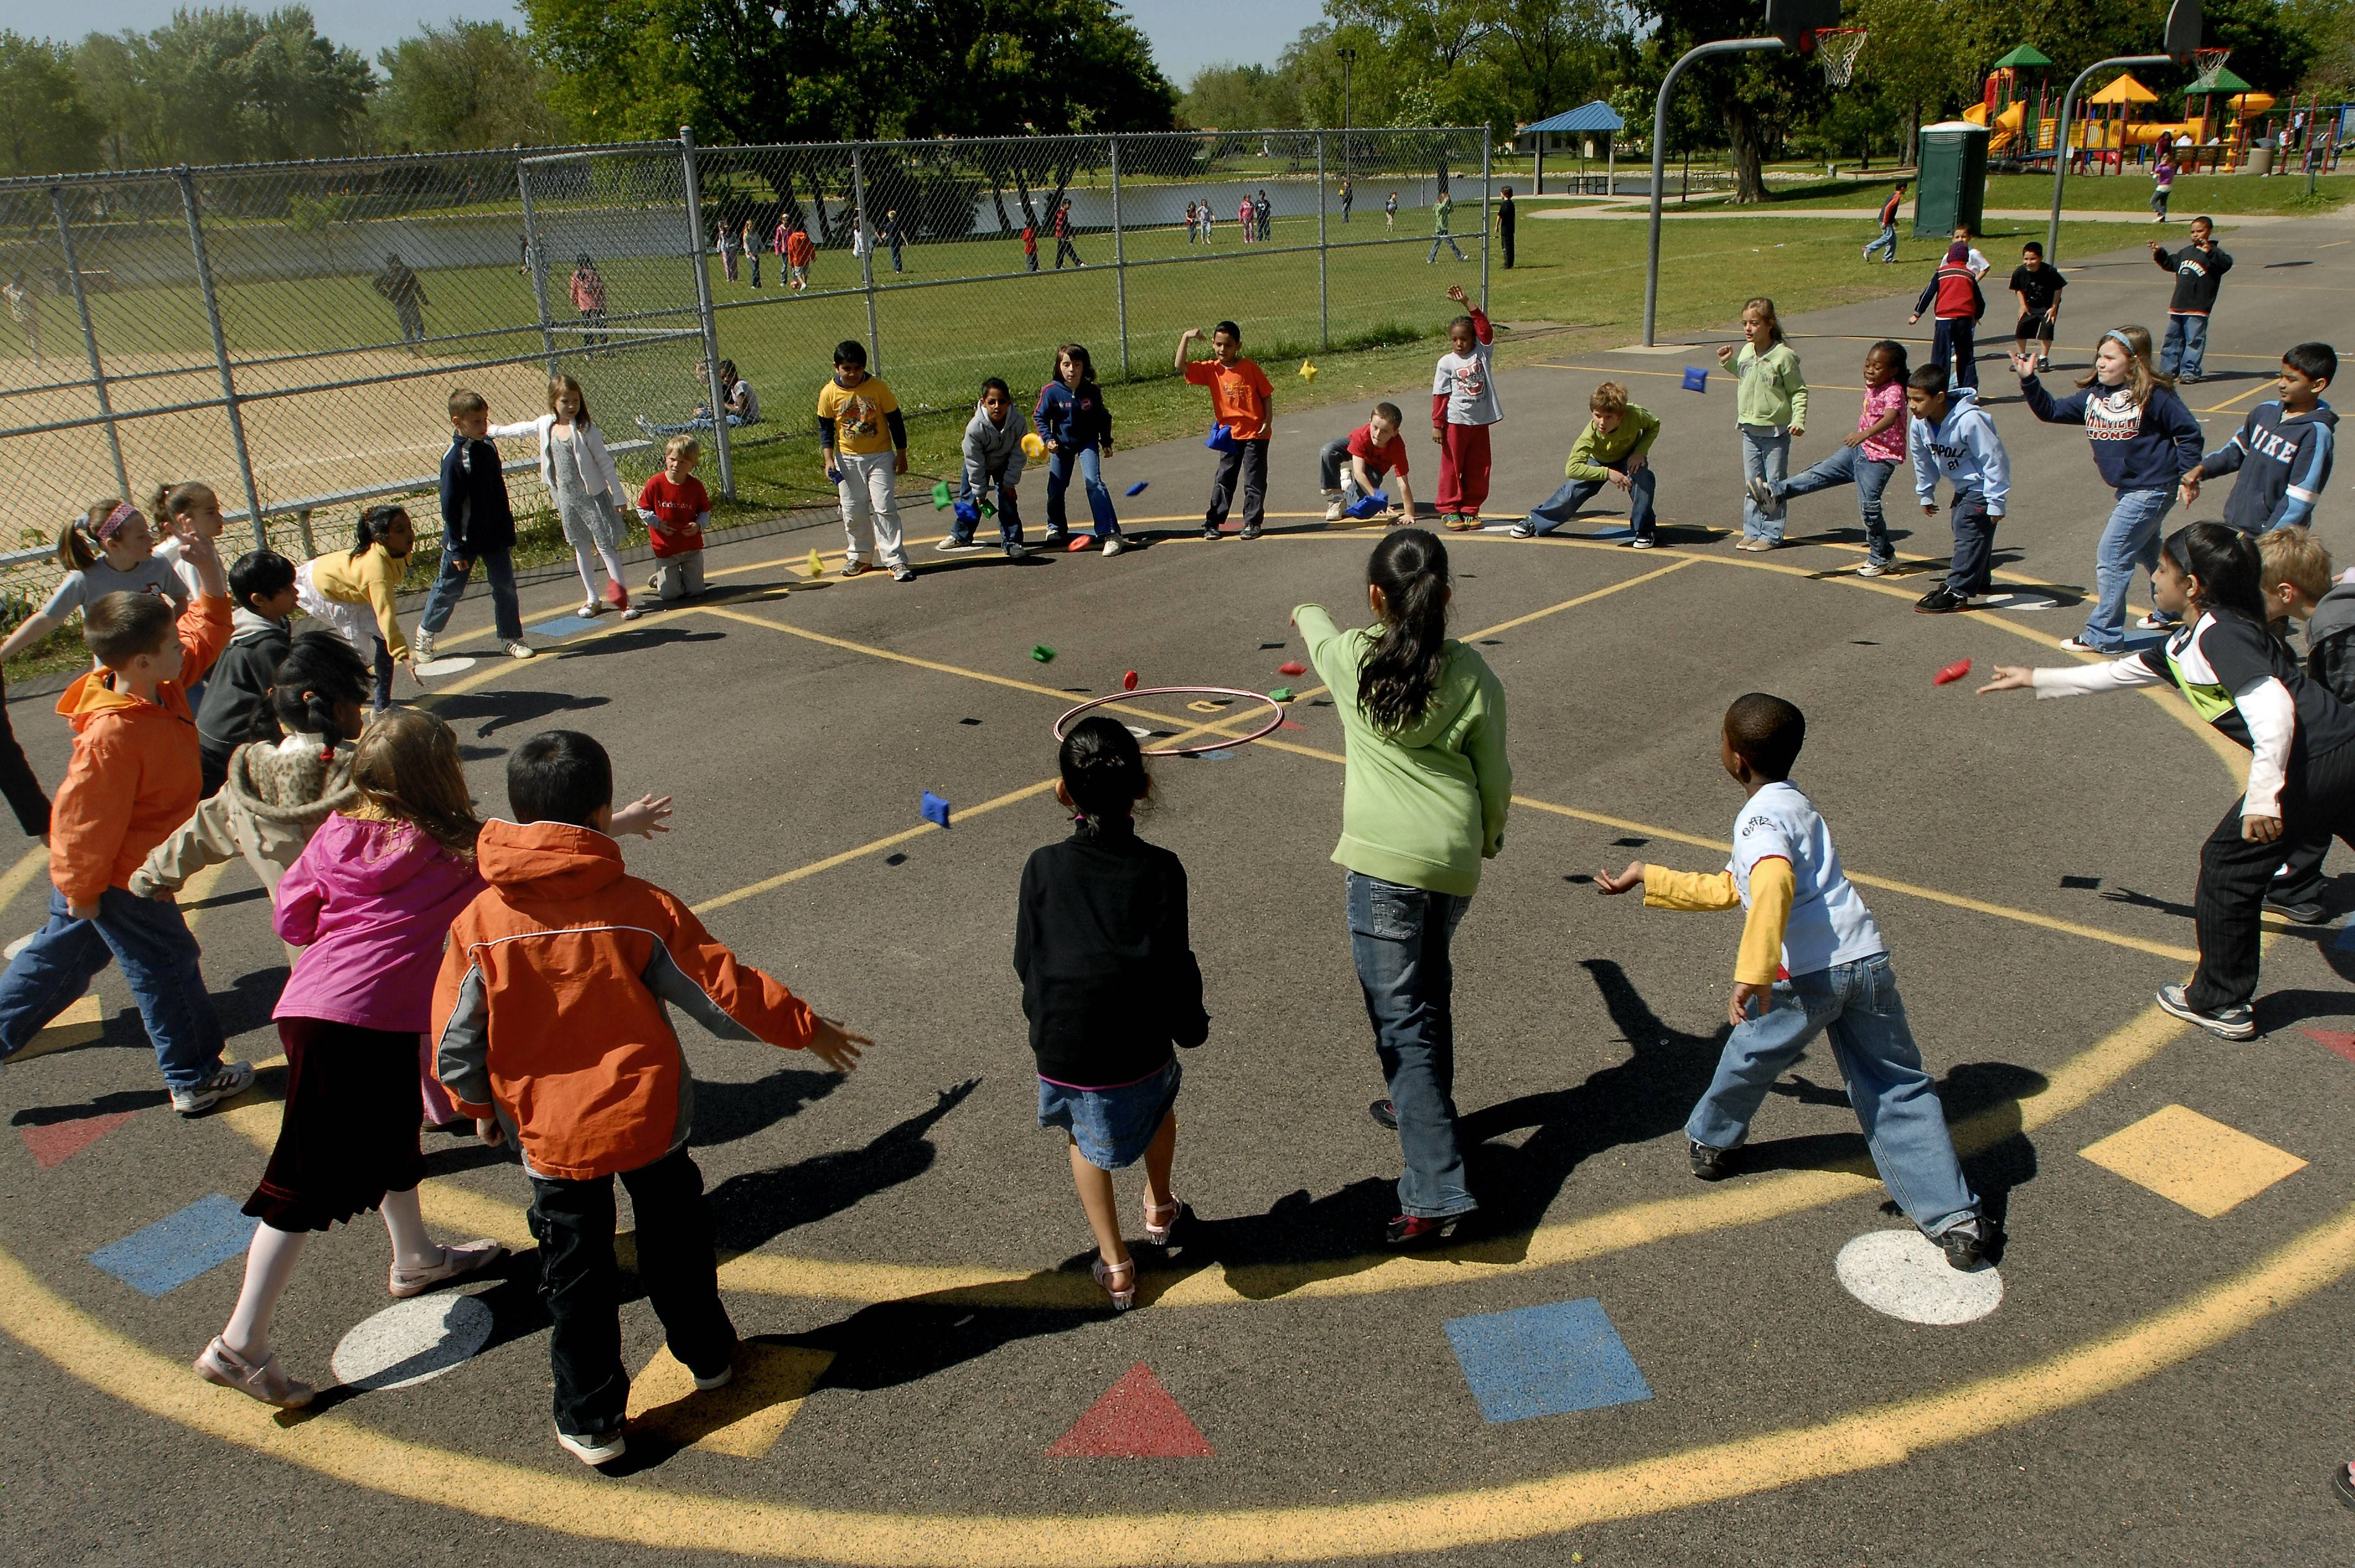 A parents group has cited health benefits in asking Grayslake Elementary District 46 to increase the amount of outdoor recess time for younger students.